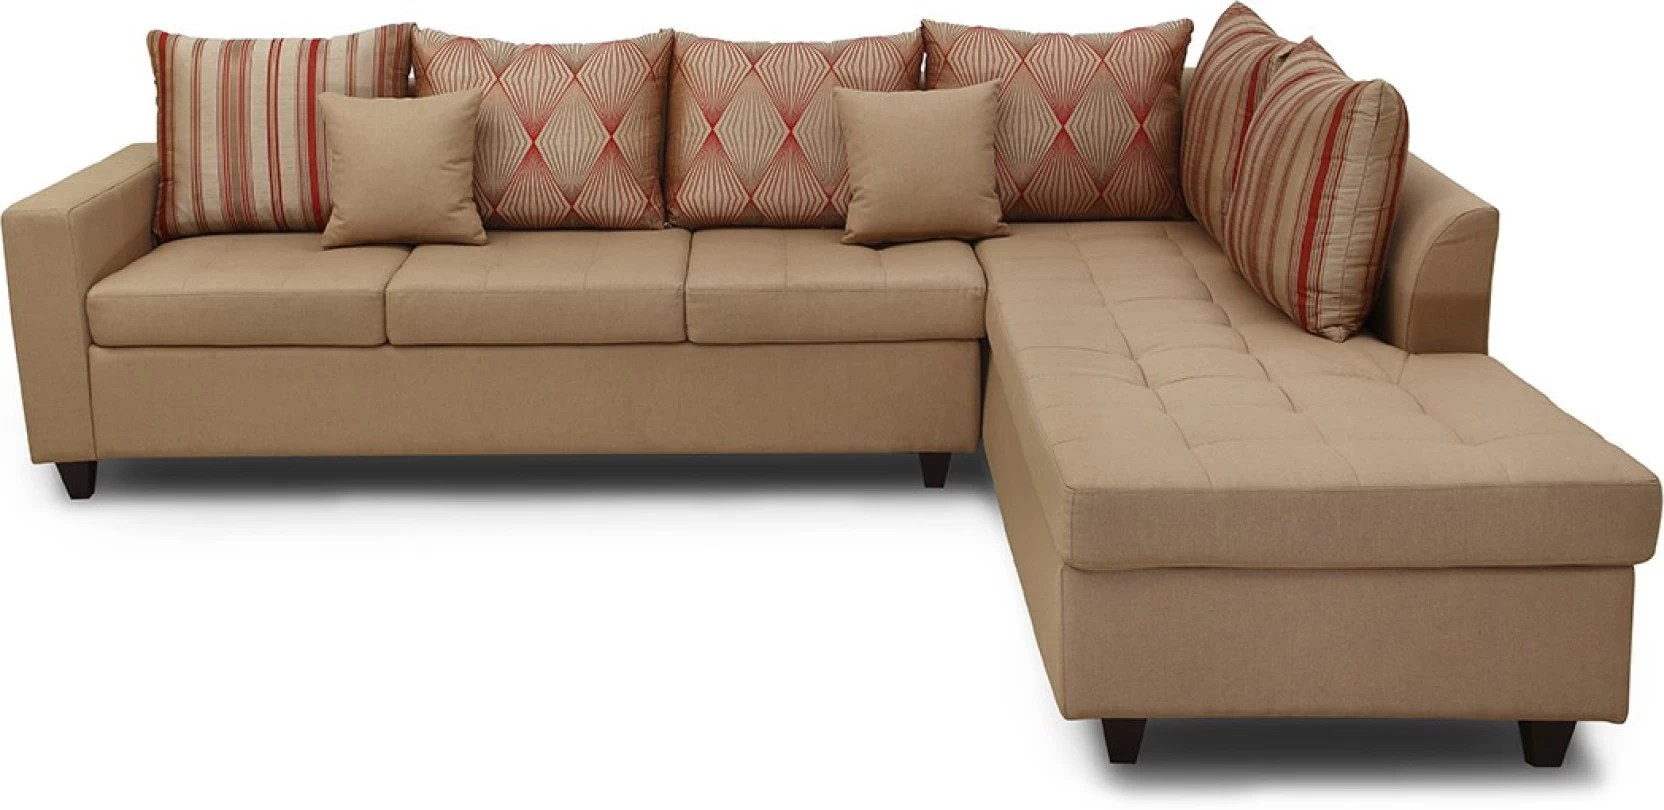 R K Sofa Set Rajkot Gujarat Hometown Belmont Lhs Fabric 6 Seater Modular Price In